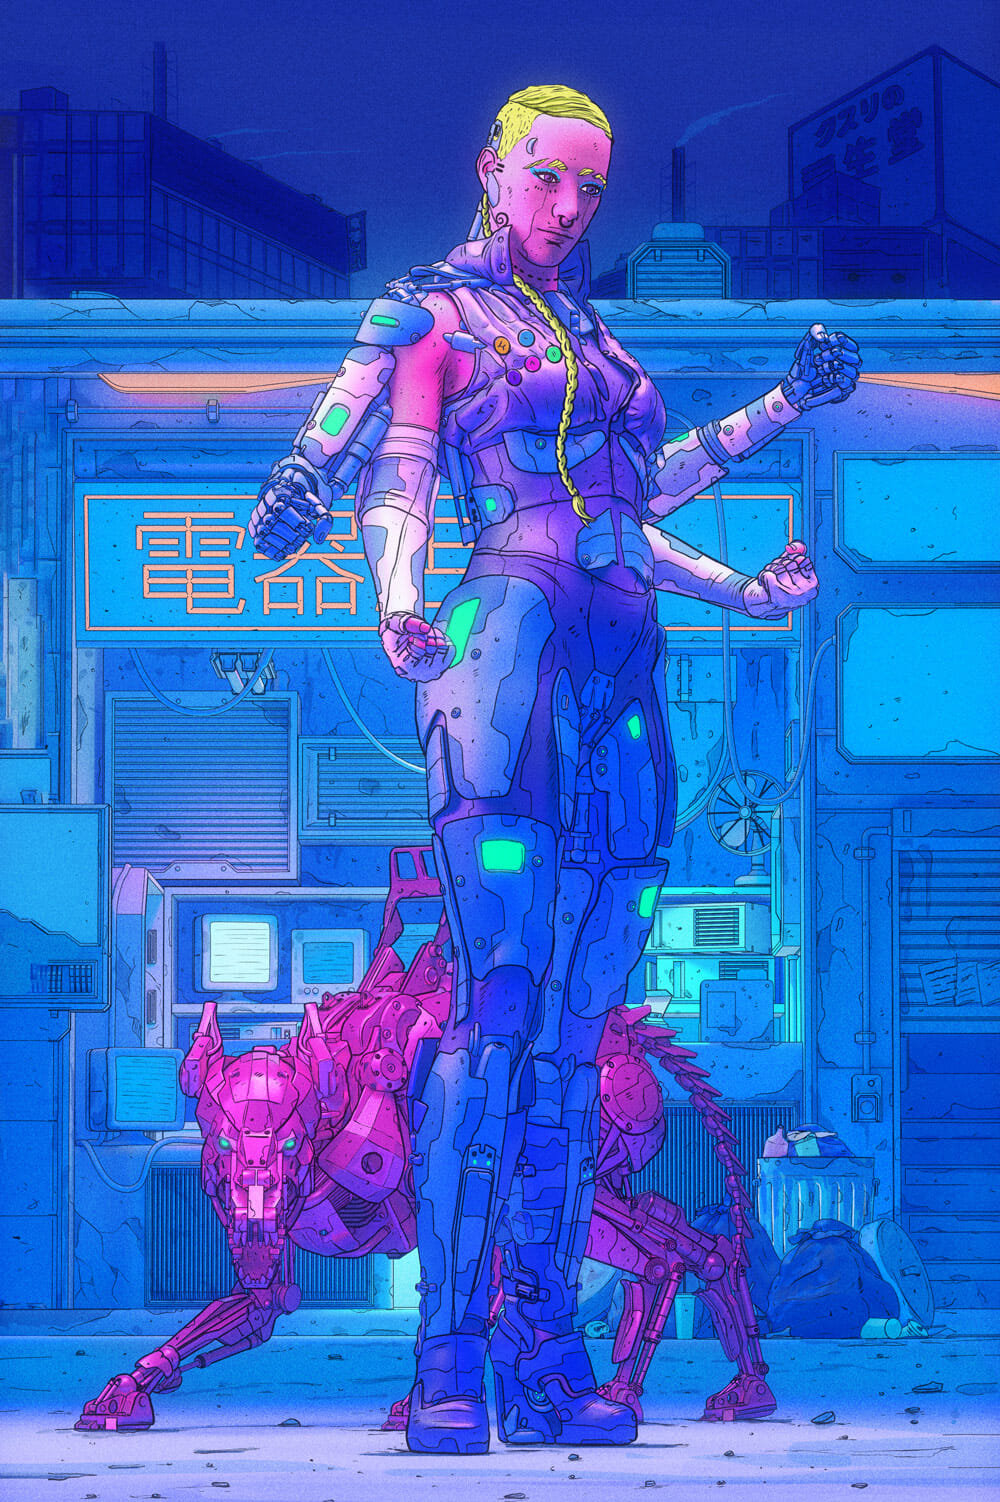 A four-armed woman in futuristic garb poses with a robotic dog in front of a neon-tinted Japanese business sign.